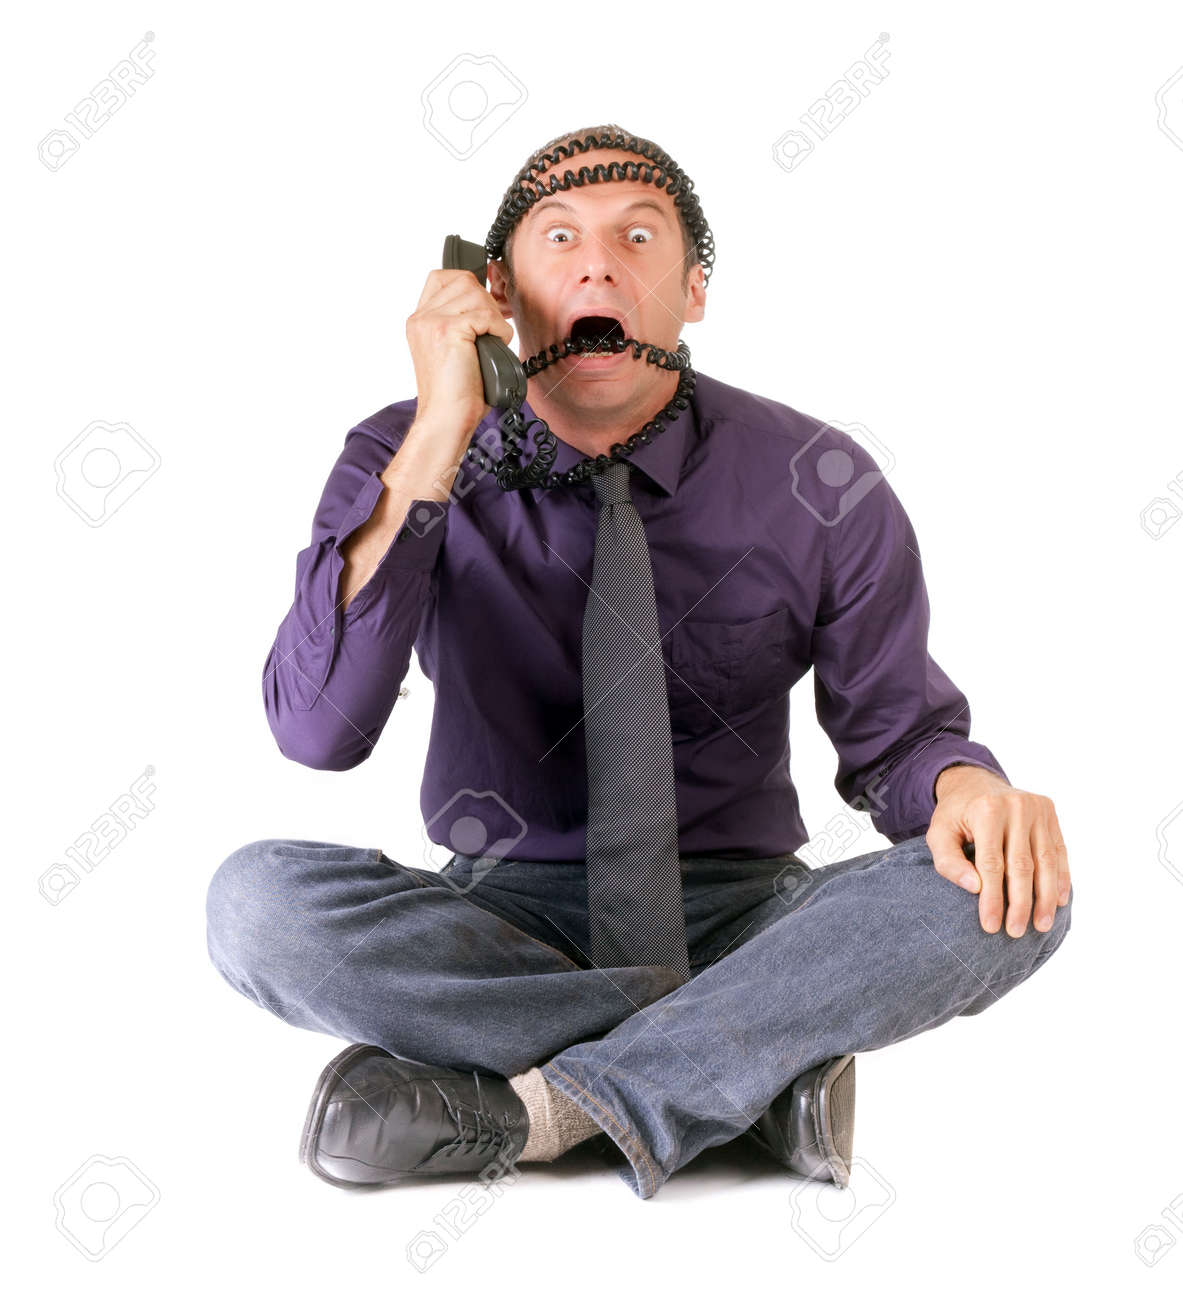 stressed business man talking on phone with cables over head Stock Photo - 5695044